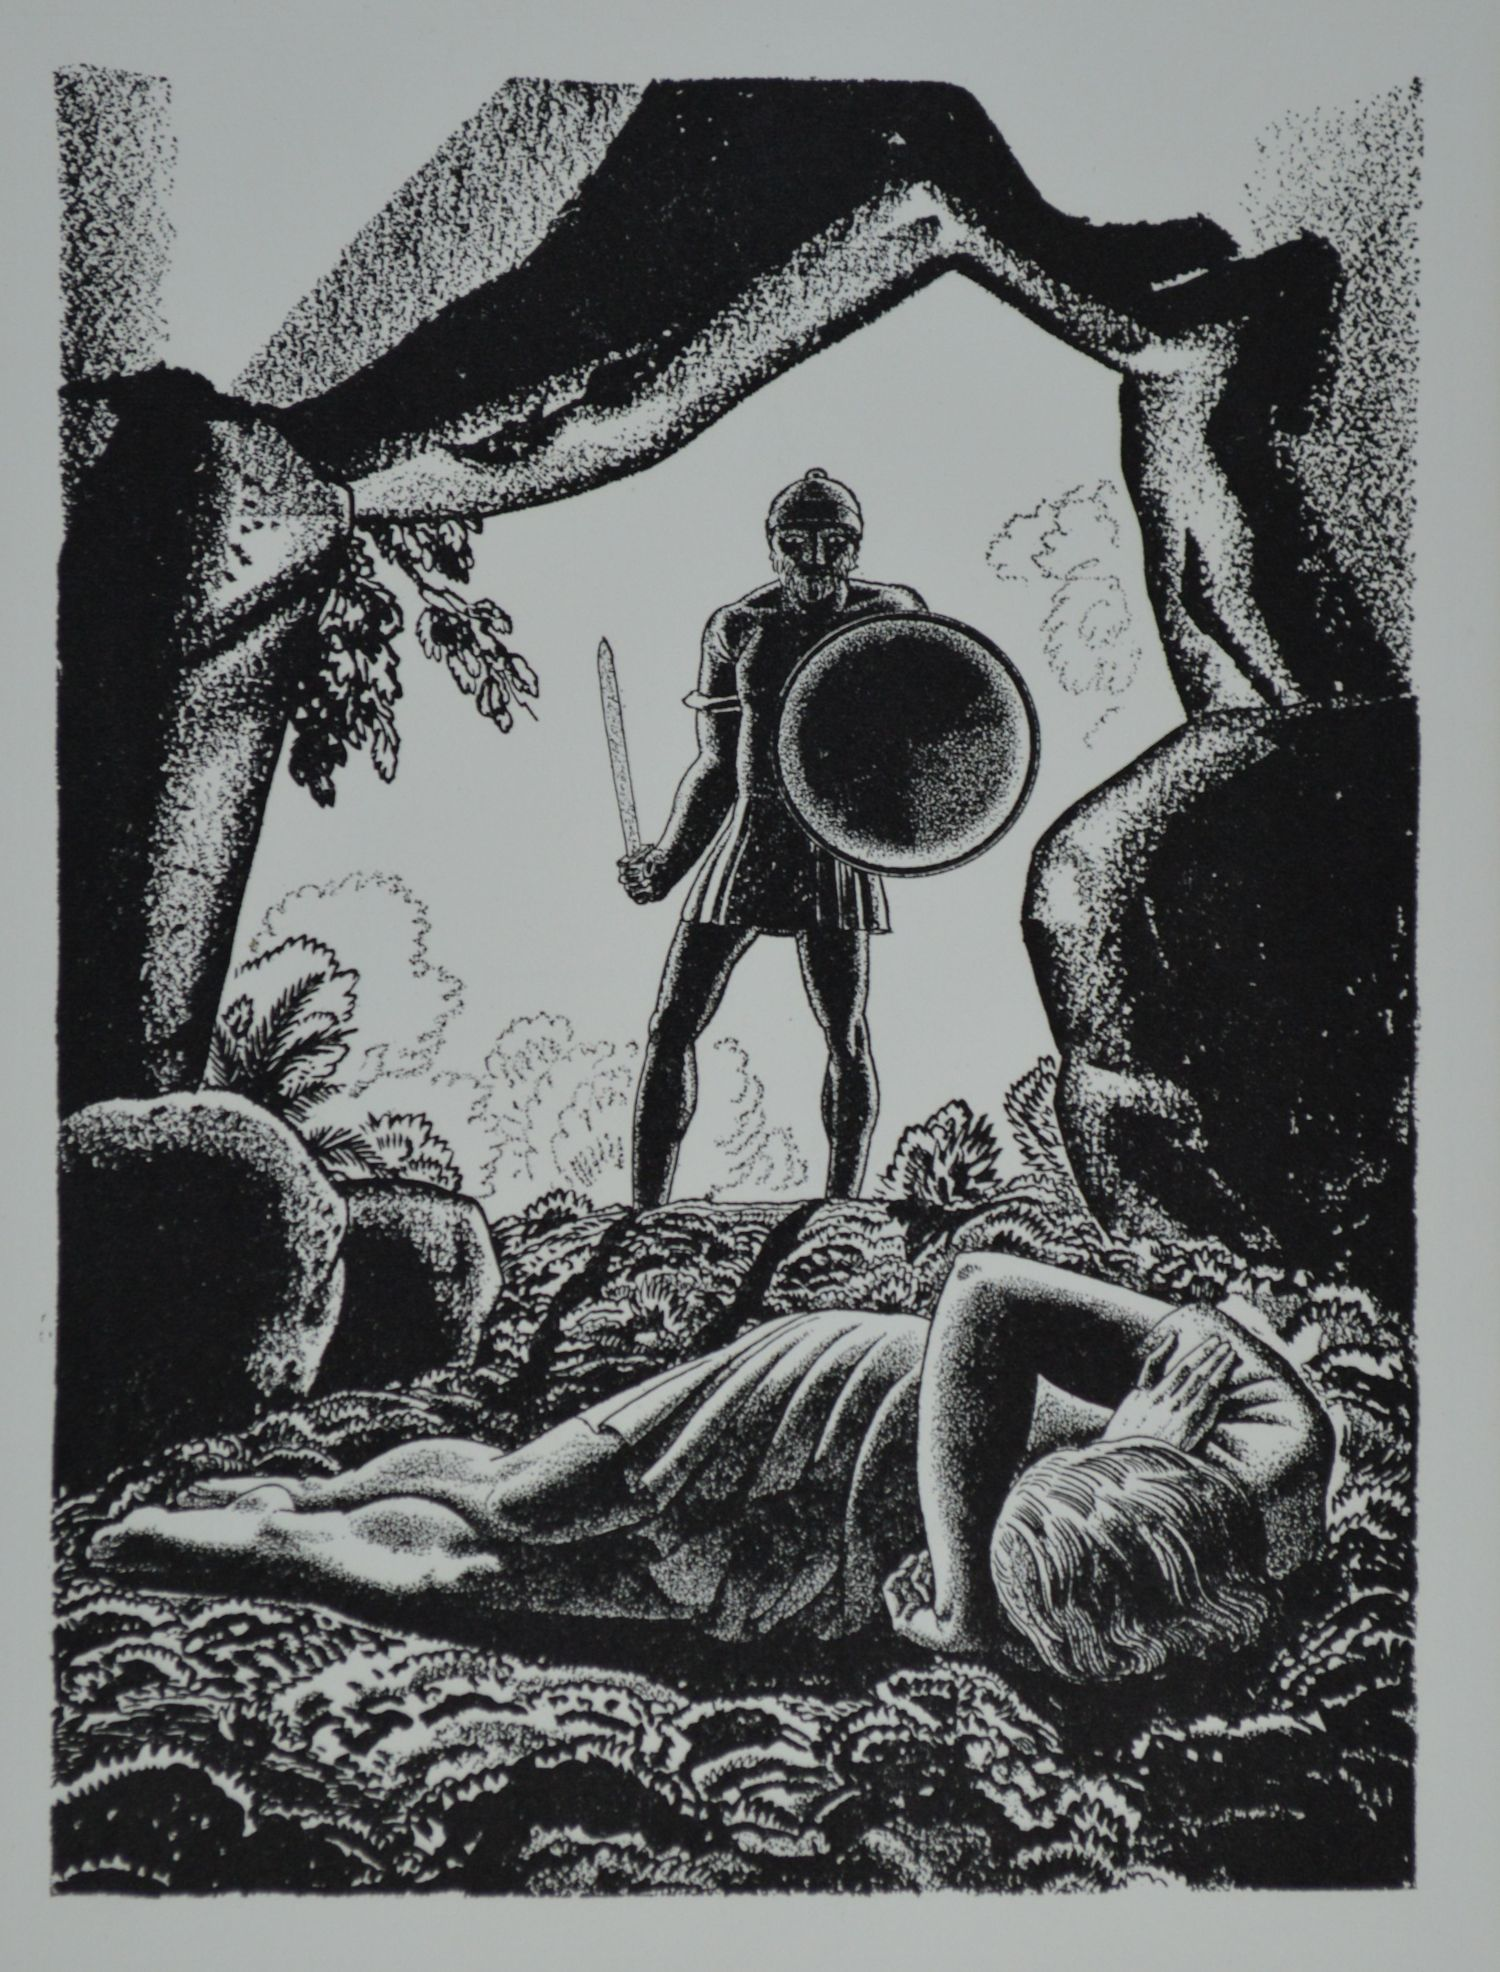 Rockwell Kent (1882 - 1971) Lithograph Illustration for  Cymbeline  from   Forty Drawings Done by Rockwell Kent to Illustrate the Works of William Shakespeare ,   Garden City, New York, Doubleday, 1936.  A total edition of 1,000 portfolios was printed. This print has been removed from its original acidic mount, cleaned, and matted using archival materials. Very good condition.   $40